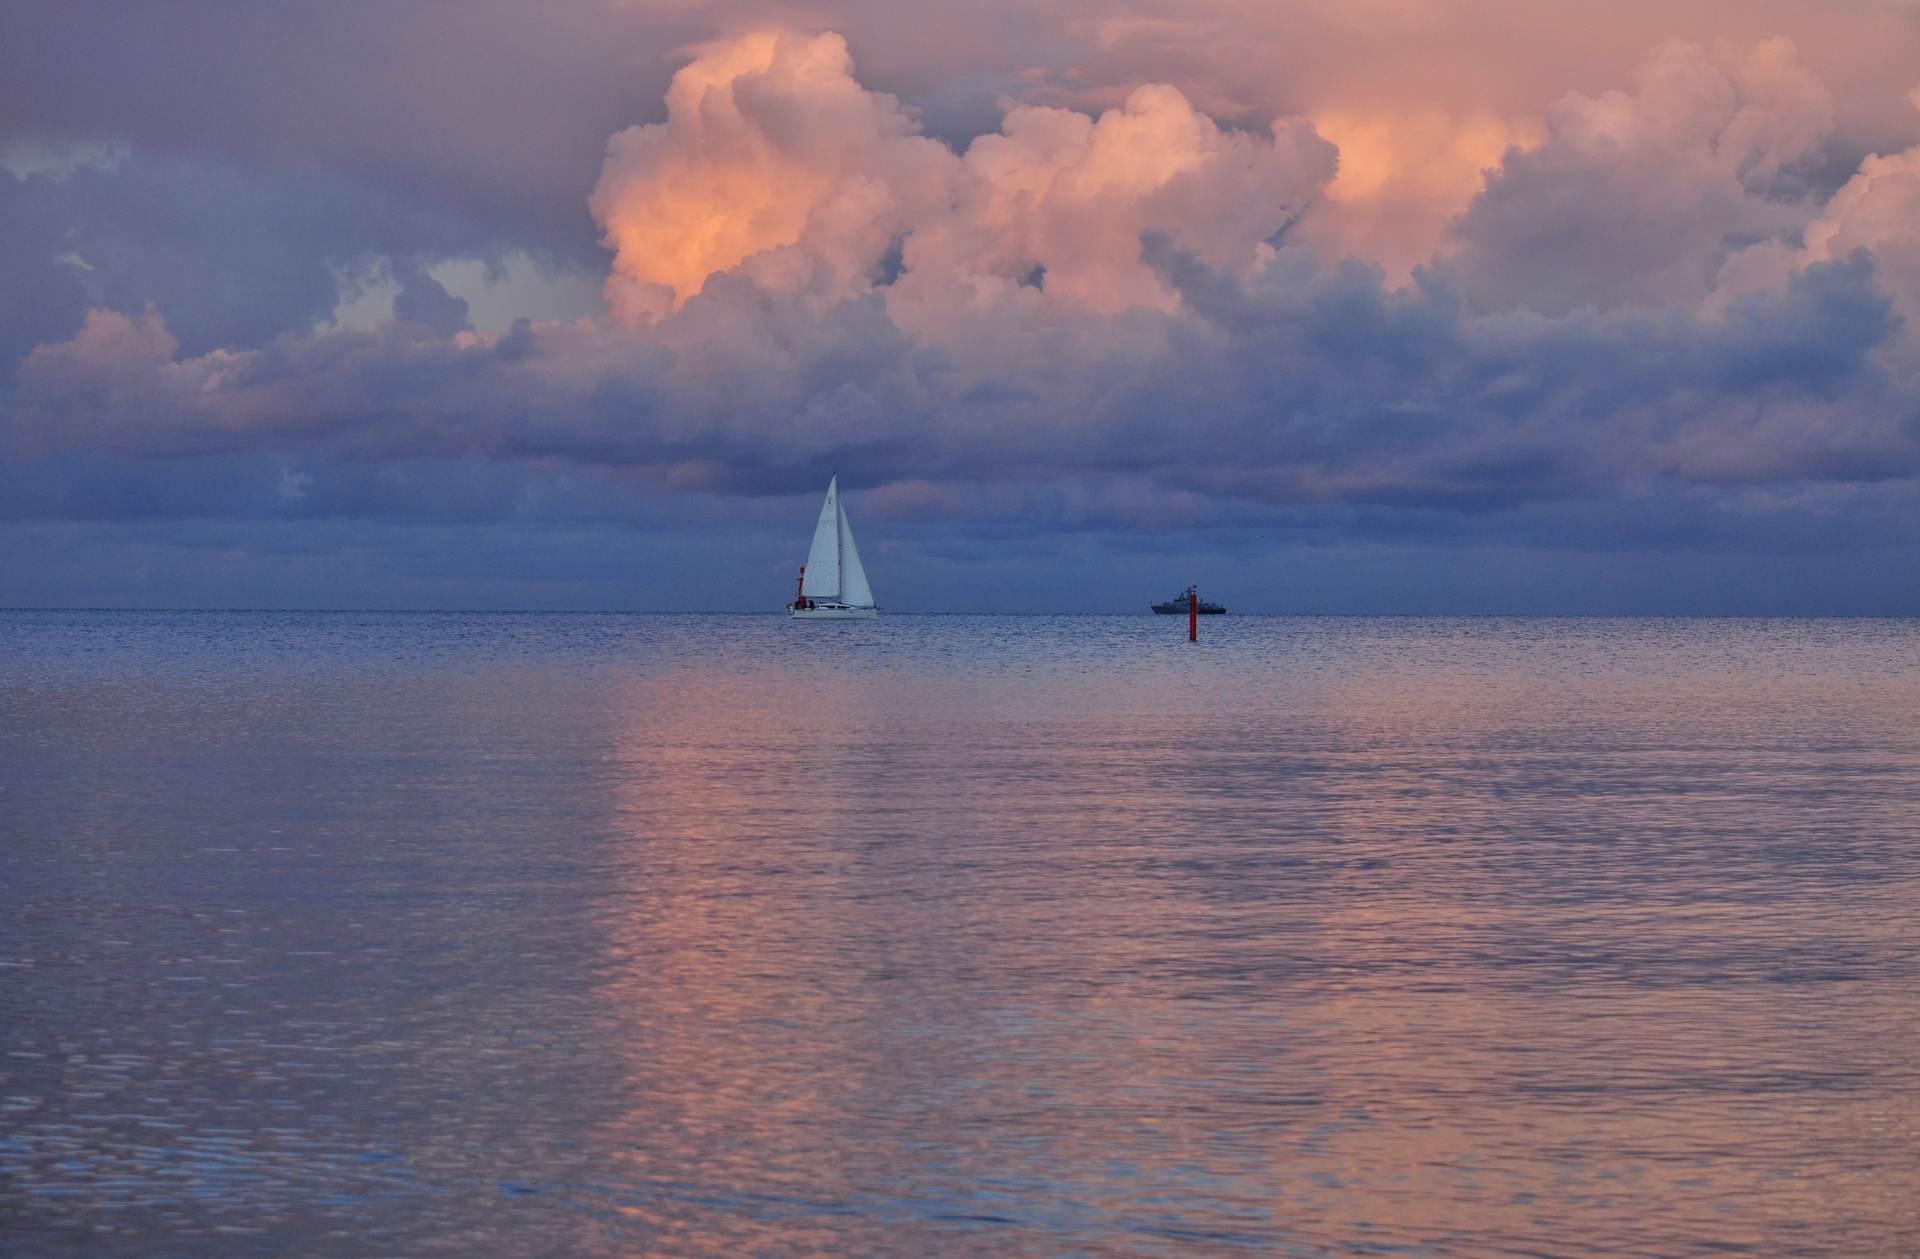 white sailboat on the dramatic sky background during august sunset at the baltic sea in poland